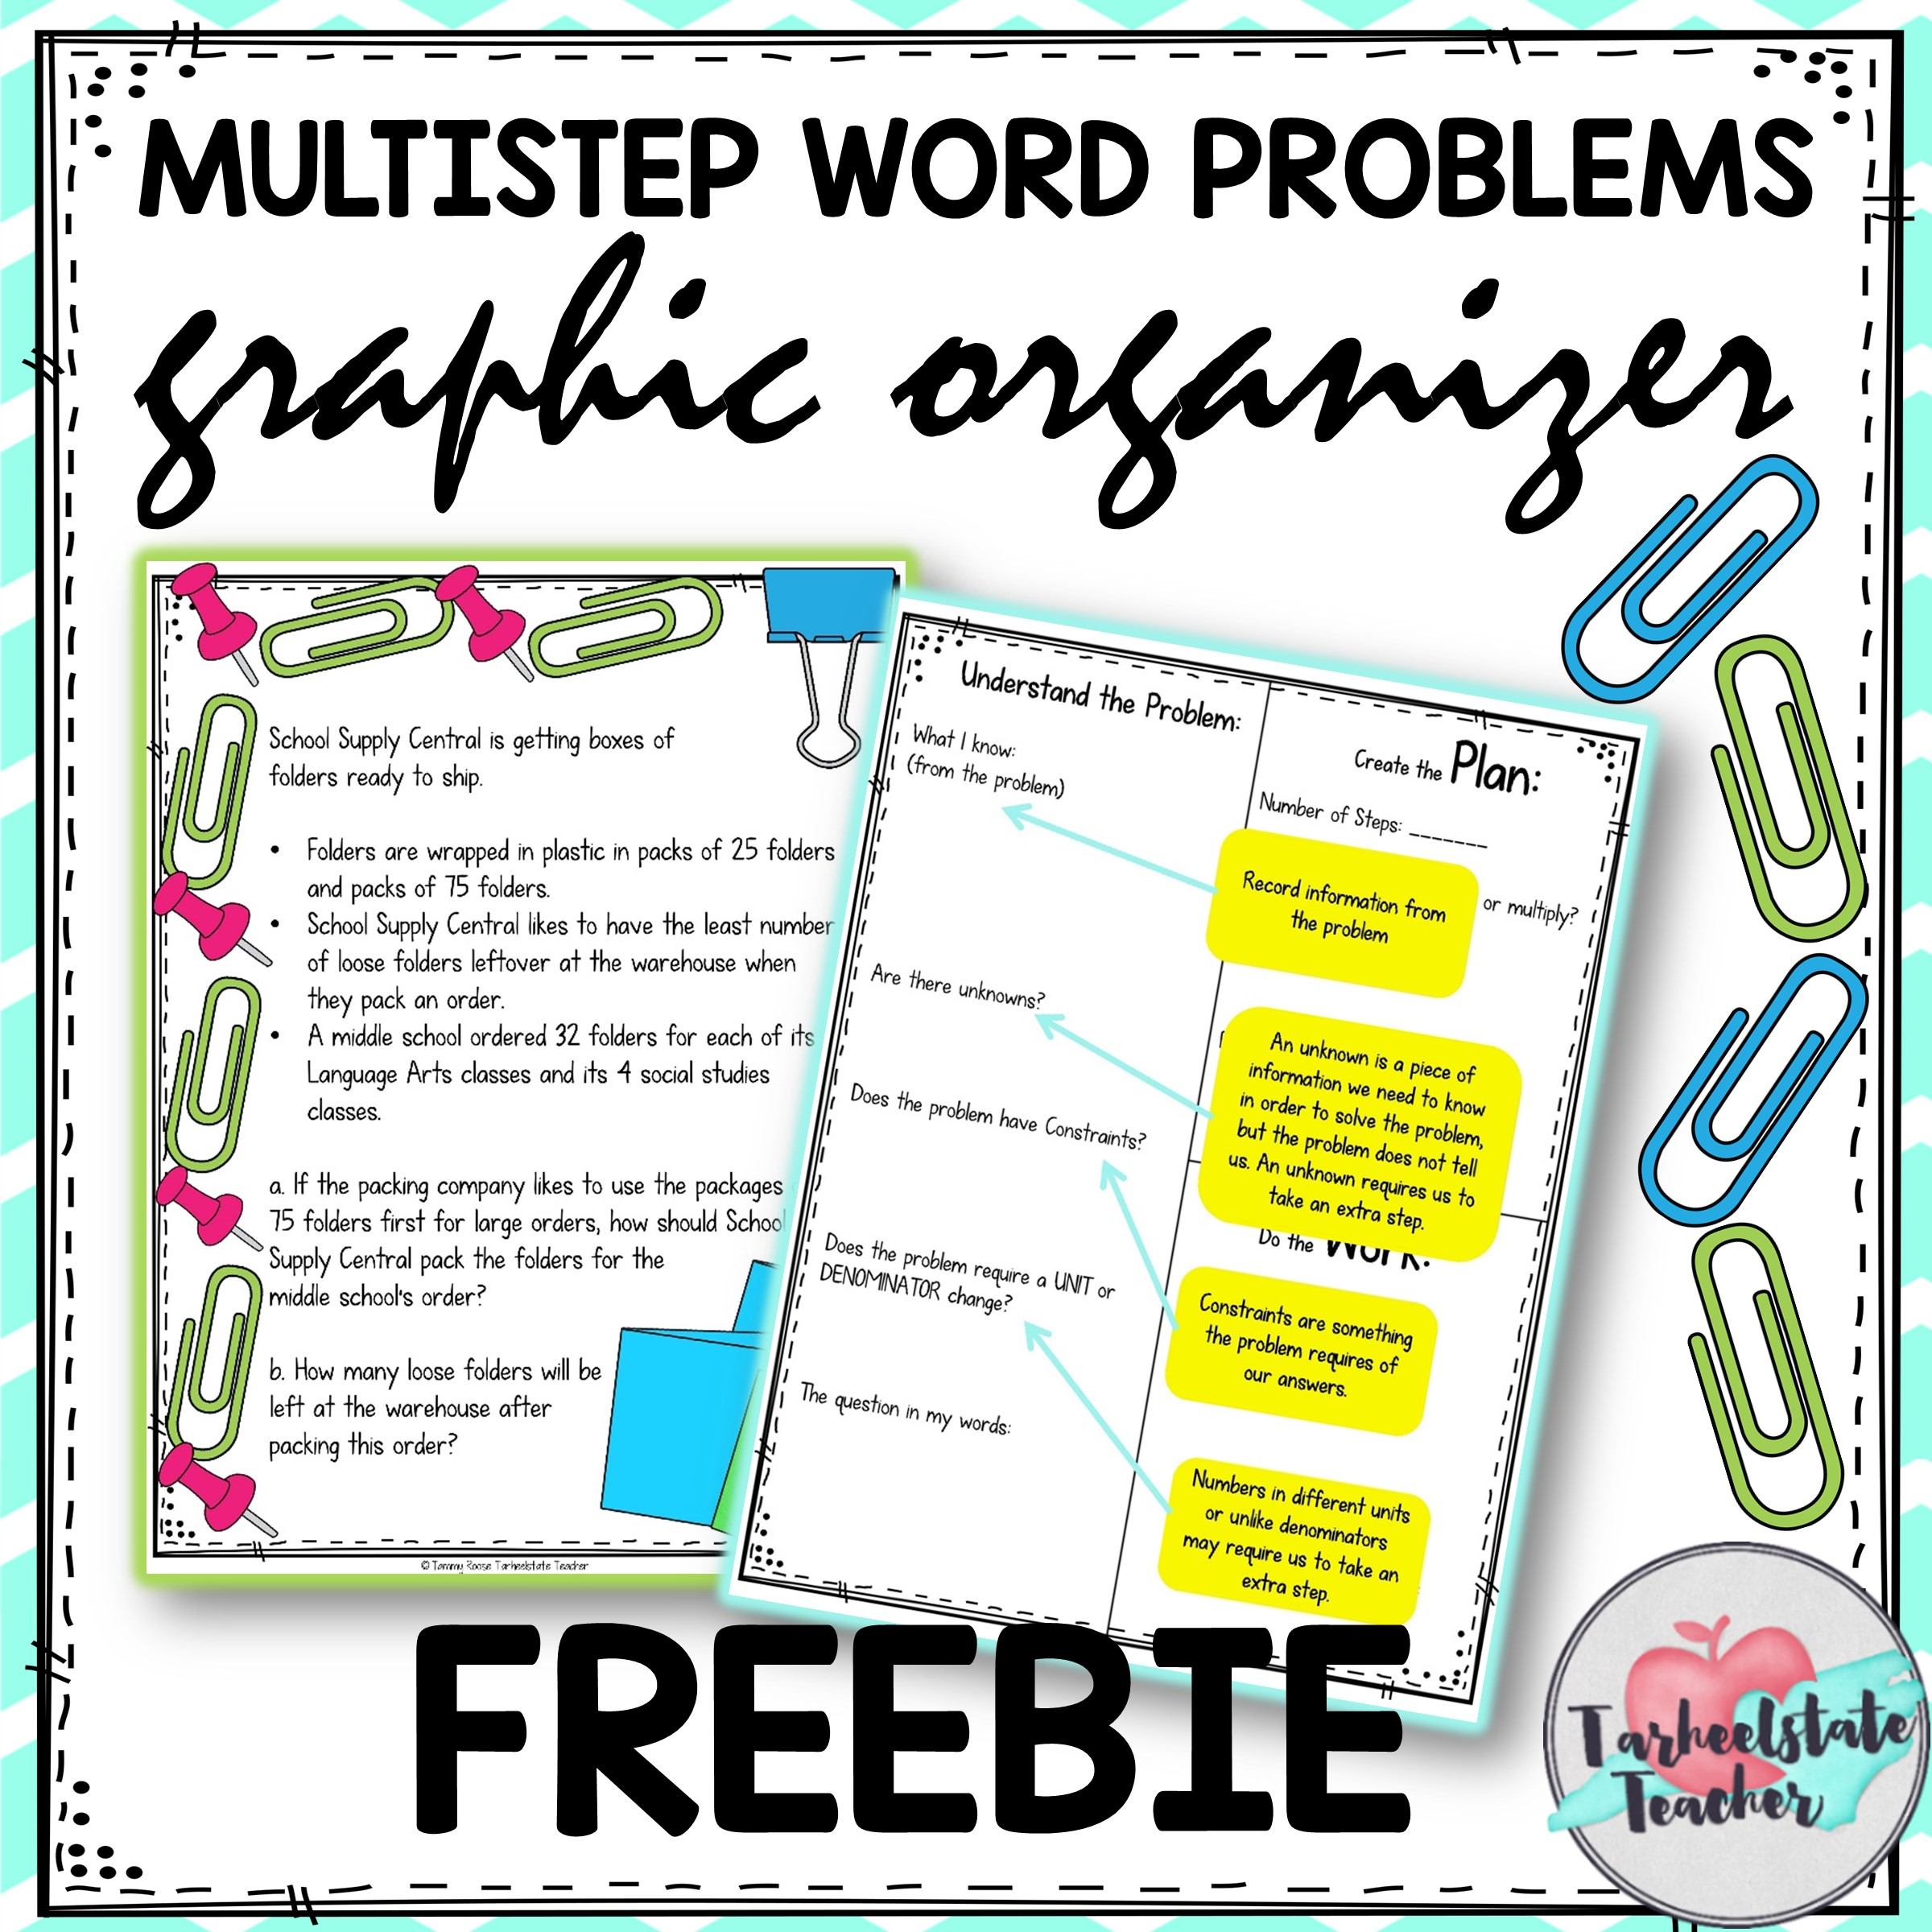 MULTI STEP WORD PROBLEMS GRAPHIC ORGANIZER FREE.jpg